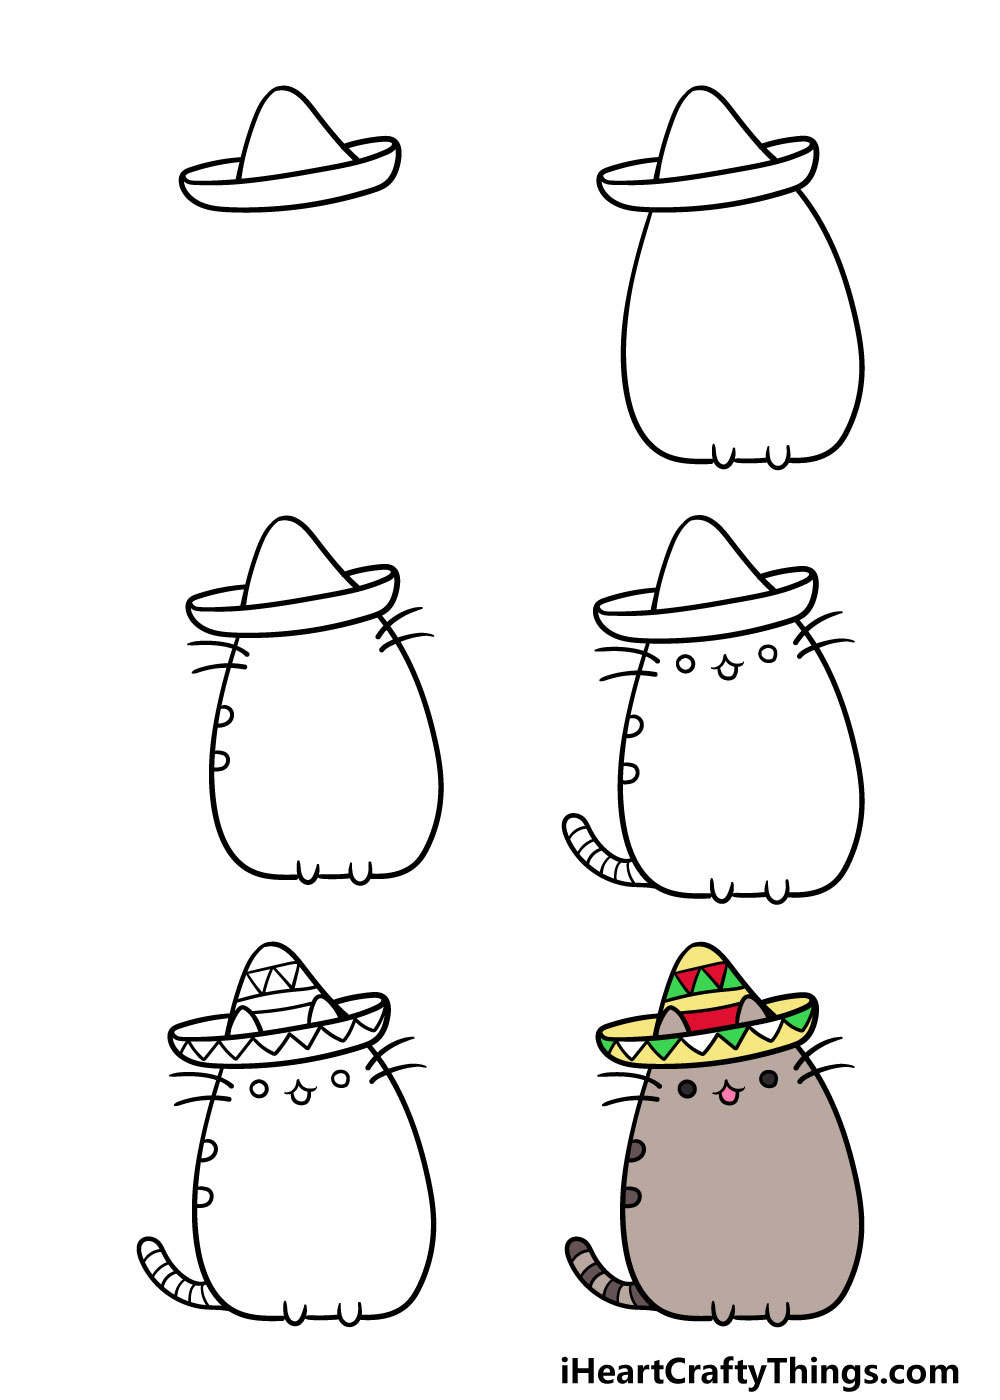 how to draw pusheen cat in 6 steps